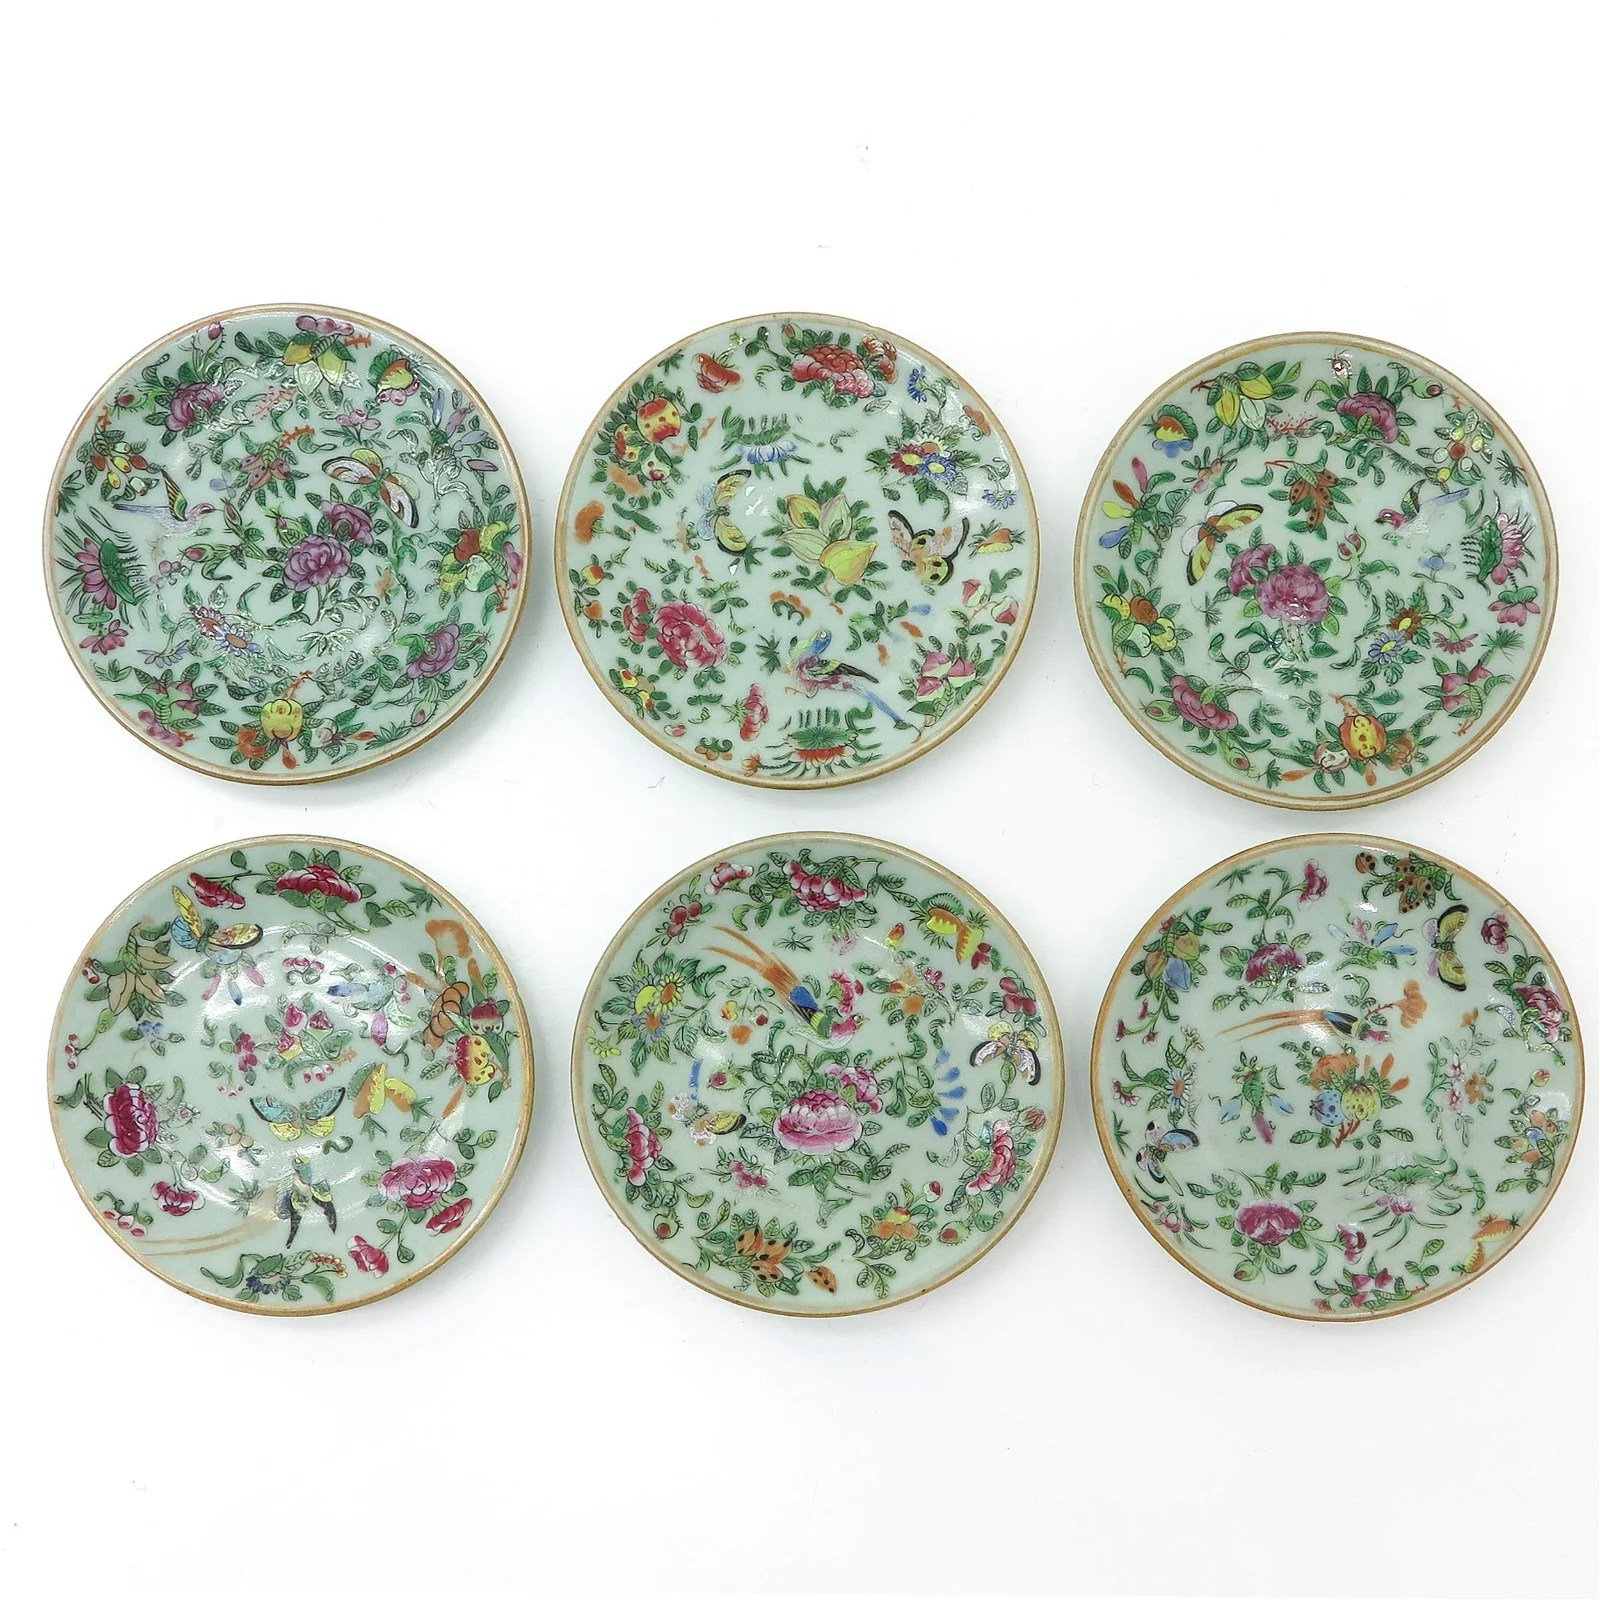 A Series of Six Cantonese Plates